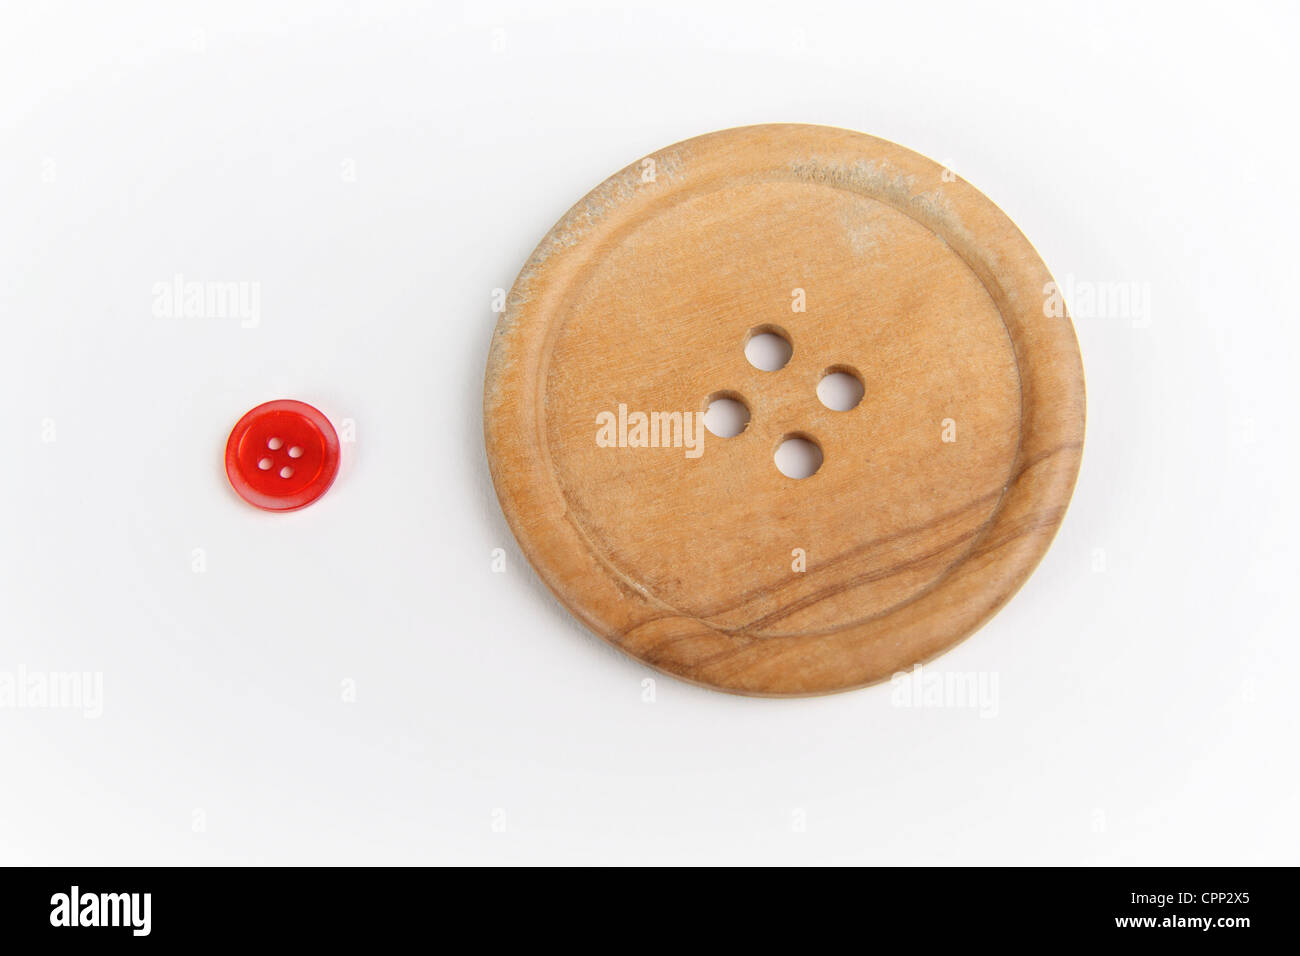 A large and small button - Stock Image